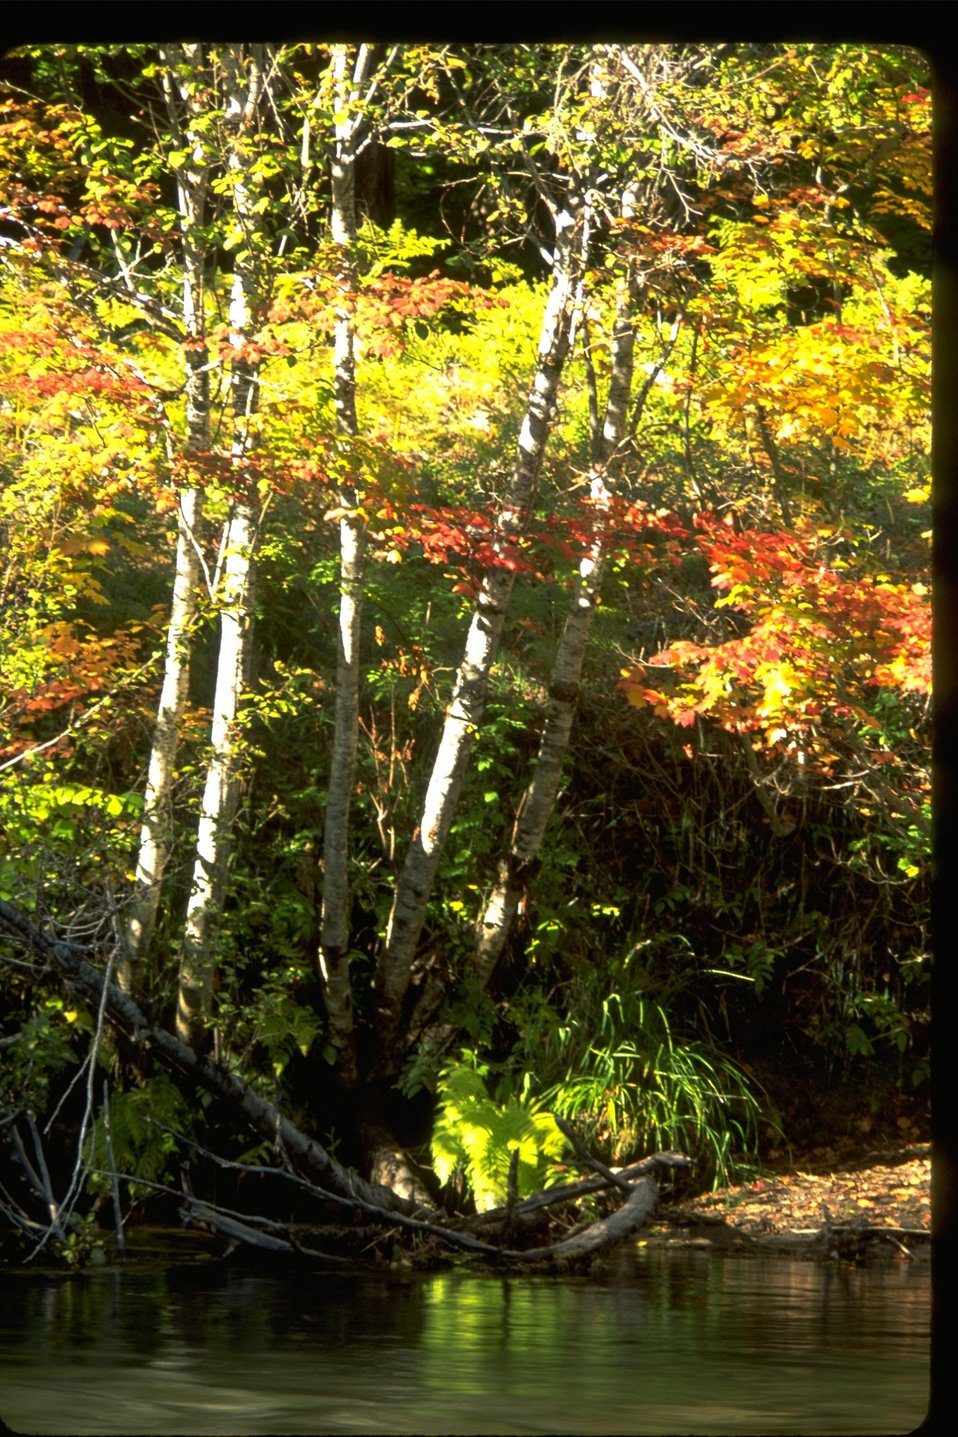 Upper Rogue River and the fall foliage.